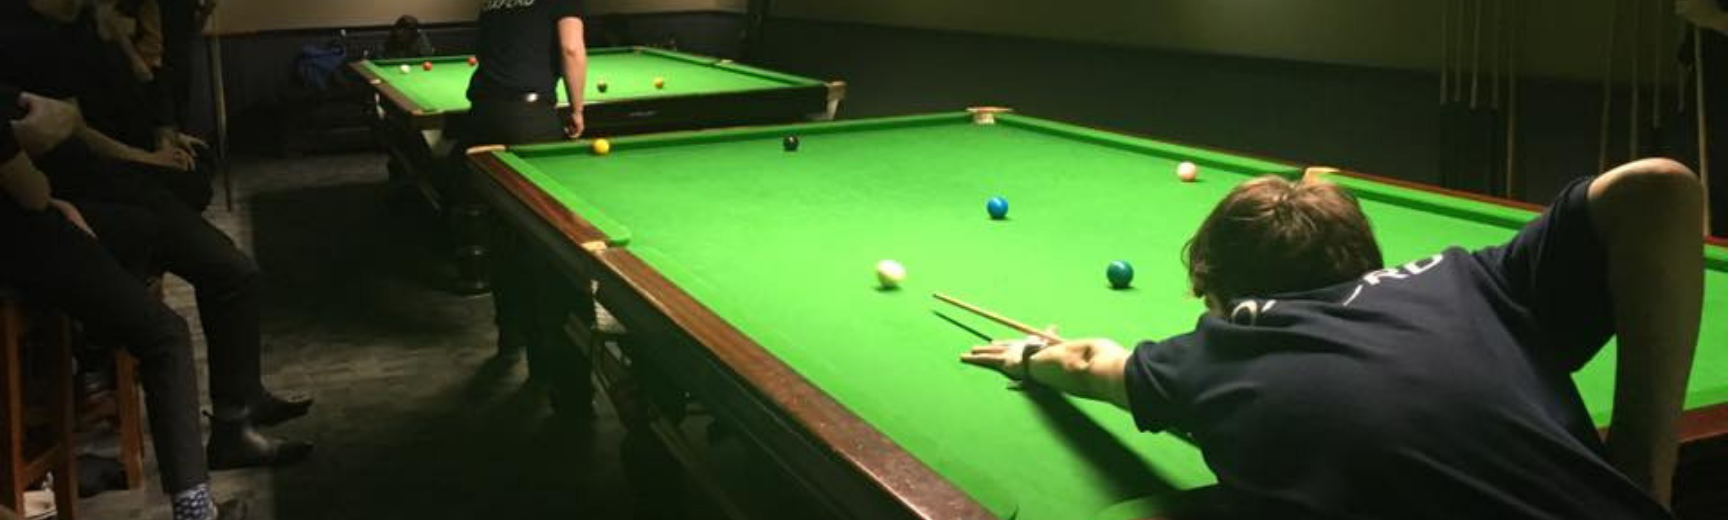 pool snooker banner